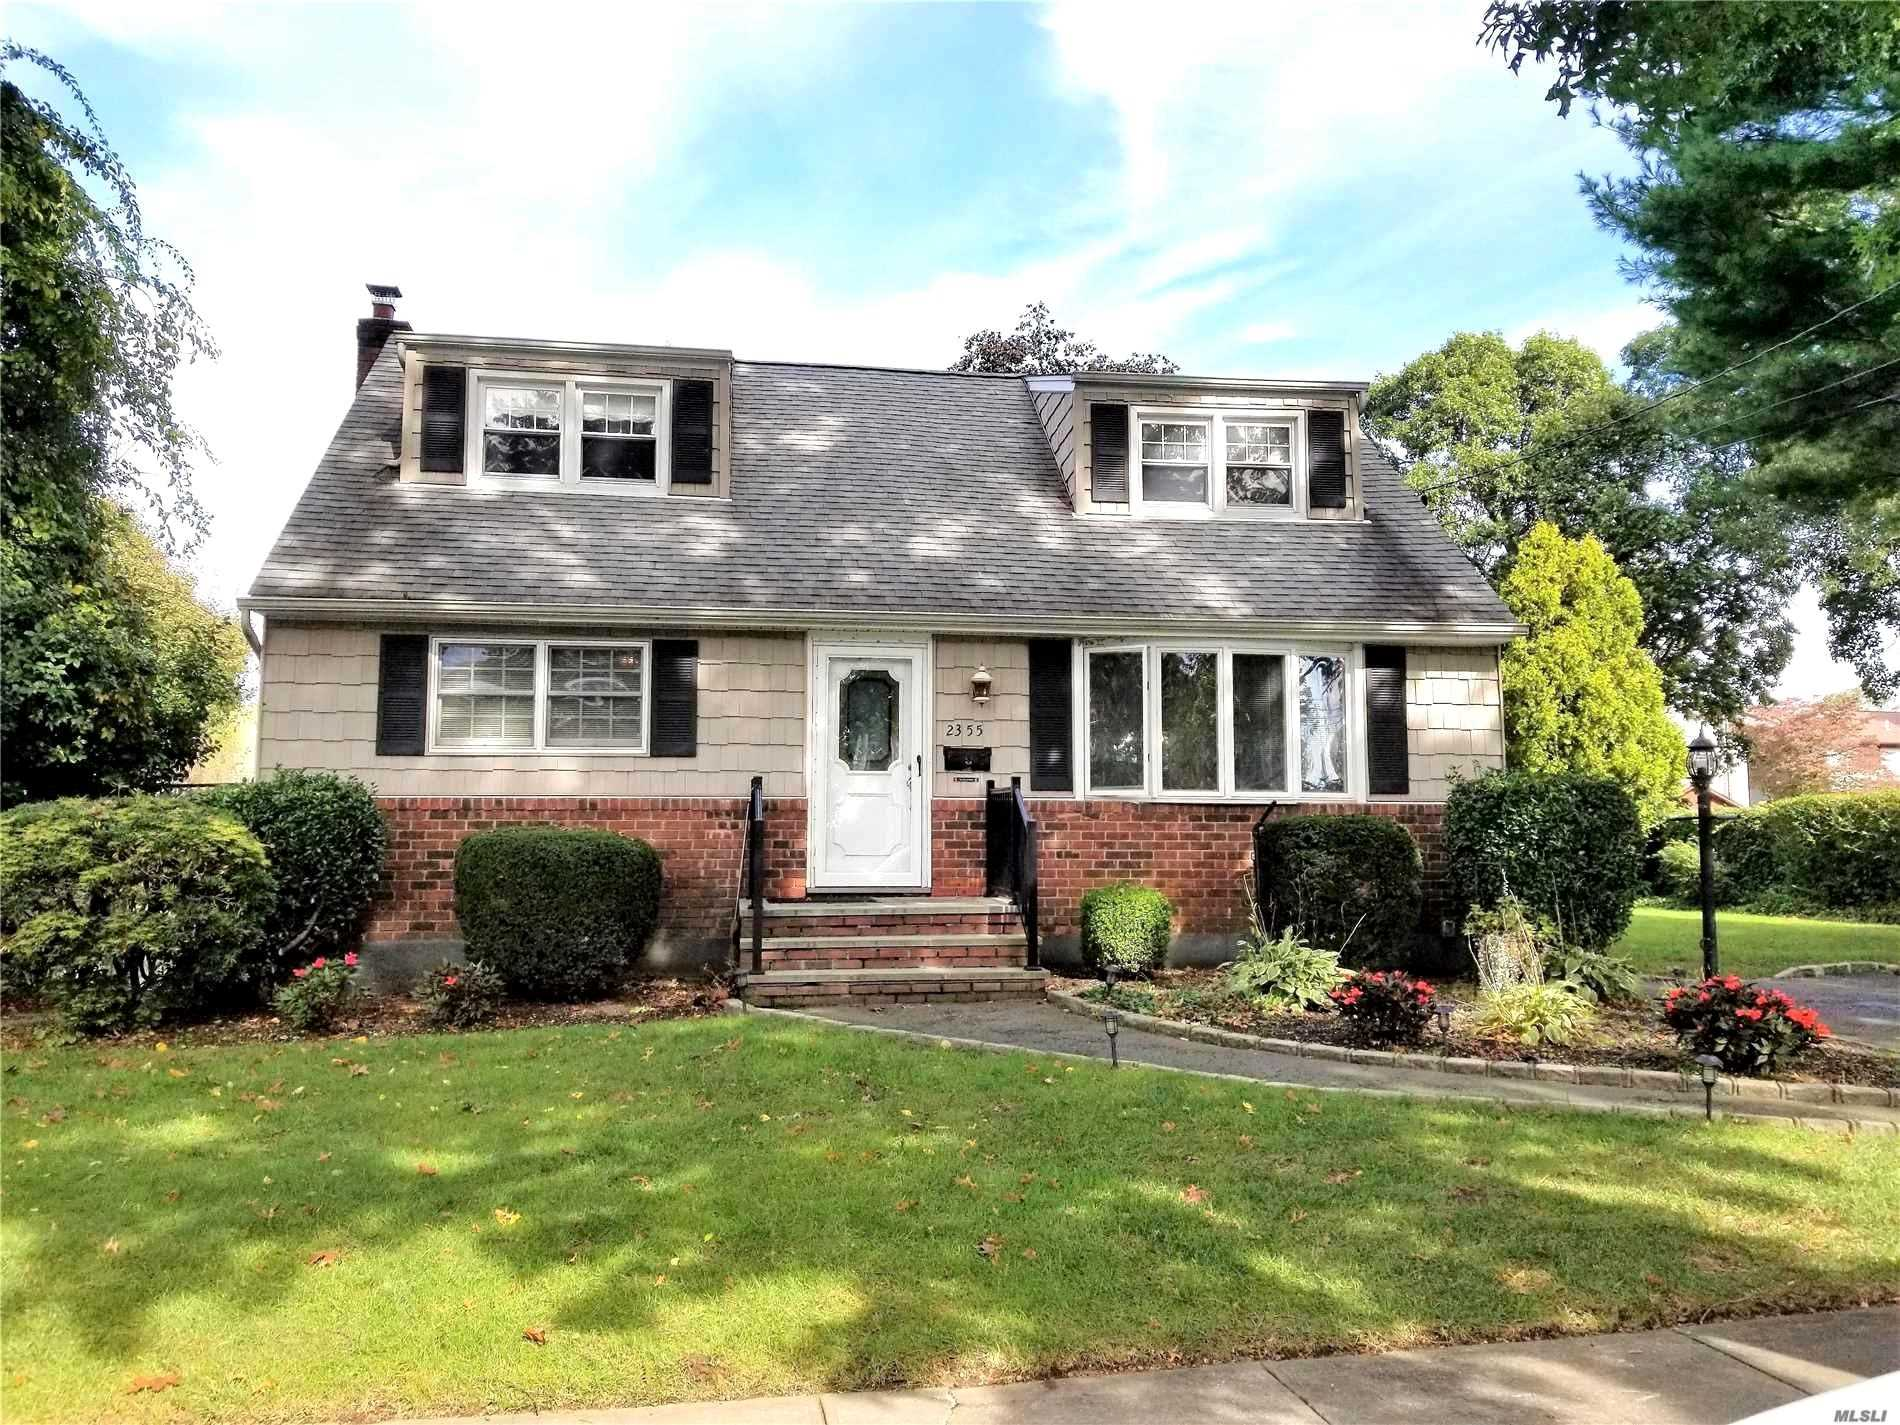 Beautiful 3 Bedroom (Possible 4) Rear Dormered Cape On Oversized Lot (90X100) In East Meadow Schools With Eik, Formal Dining Room, 2 Full Bathrooms, Attic Room (Which Can Be Converted To 4th Bedroom), New Boiler, Igs, Walk Out Basement Includes Laundry Room, Storage Room & Full Bath. Professionally Landscaped With Tons Of Curb Appeal. Gas Hookup Located In Street - Can Easily Be Converted From Oil To Gas. Taxes In The Process Of Being Grieved.